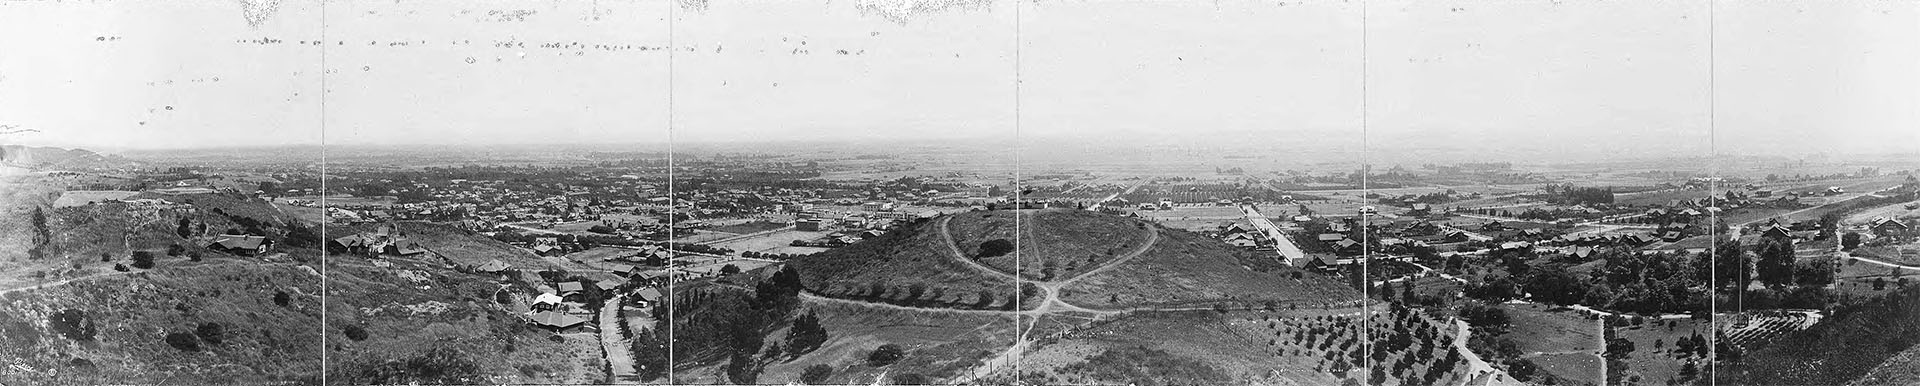 Panoramic view of Hollywood taken from Lookout mountain, ca. 1906